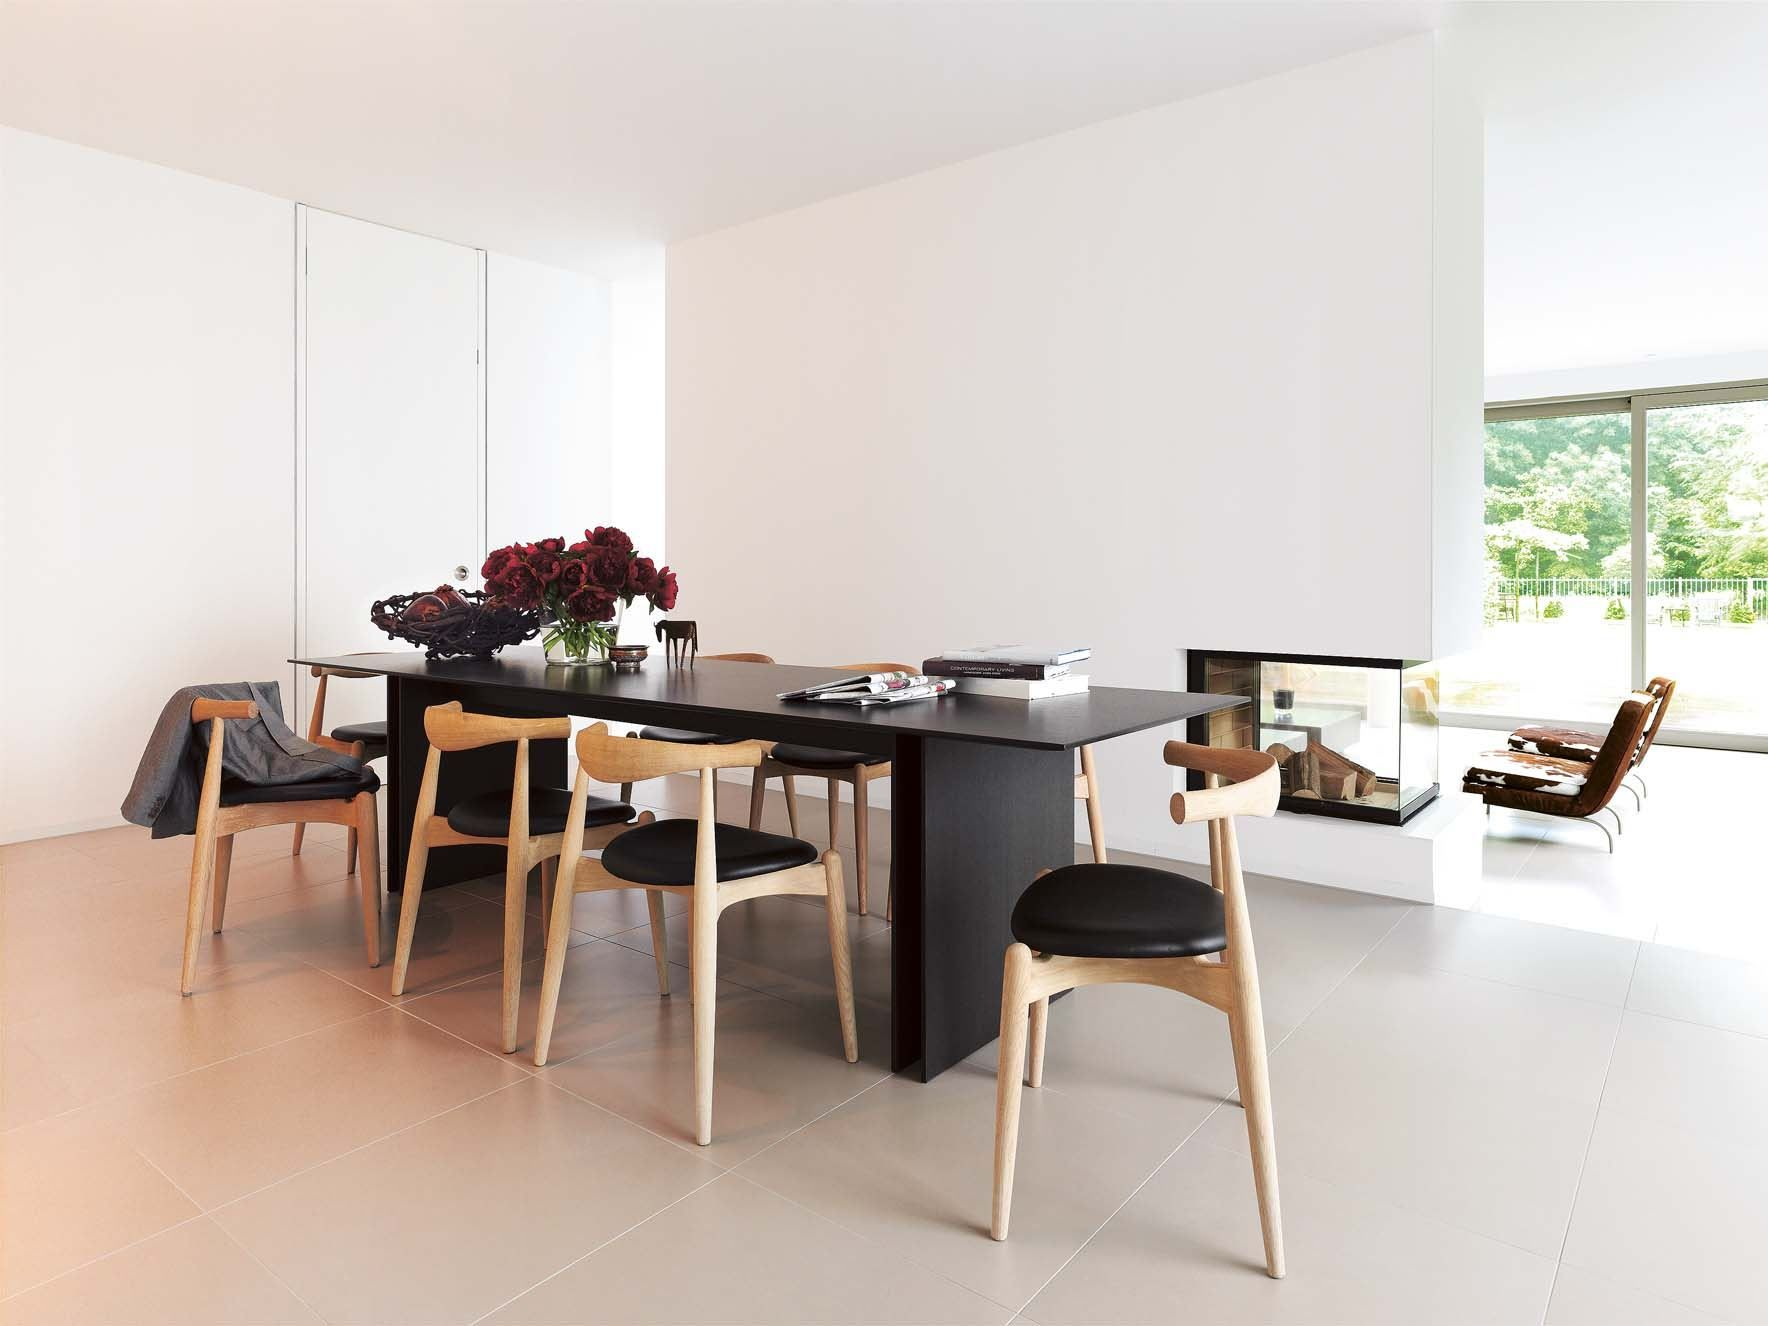 C3 Table by Bulthaup | 厨房 | Pinterest | Kitchen dining, Dining and ...